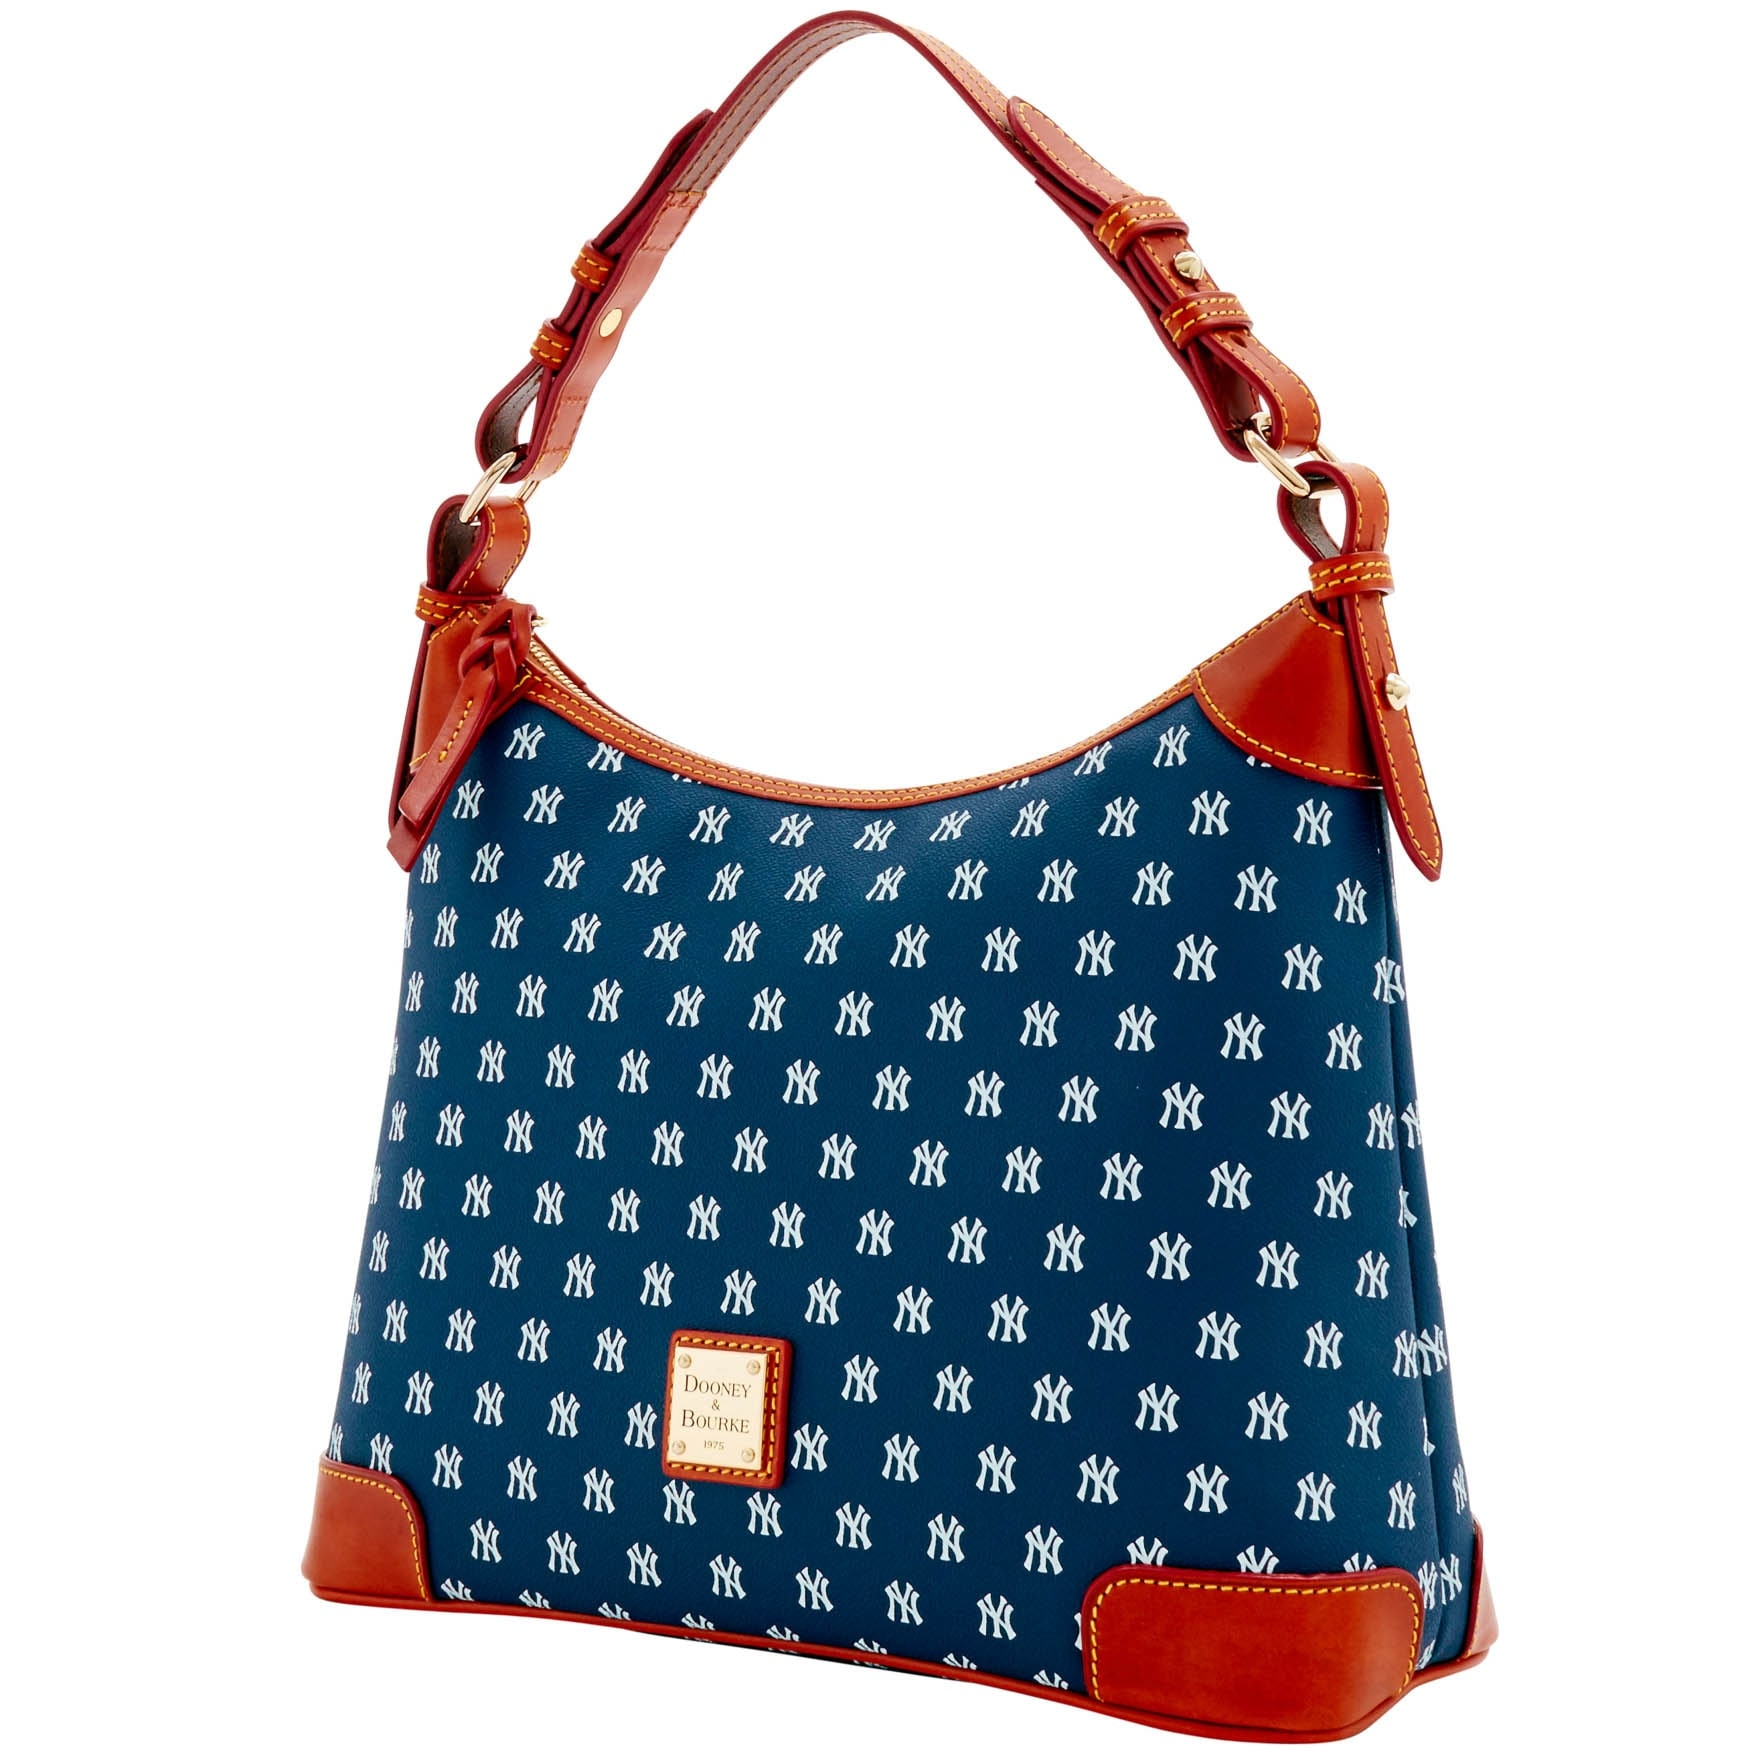 6d0ffaf057a3 Shop Dooney   Bourke MLB New York Yankees Hobo Shoulder Bag (Introduced by  Dooney   Bourke at  218 in Feb 2015) - Free Shipping Today - Overstock -  23141406